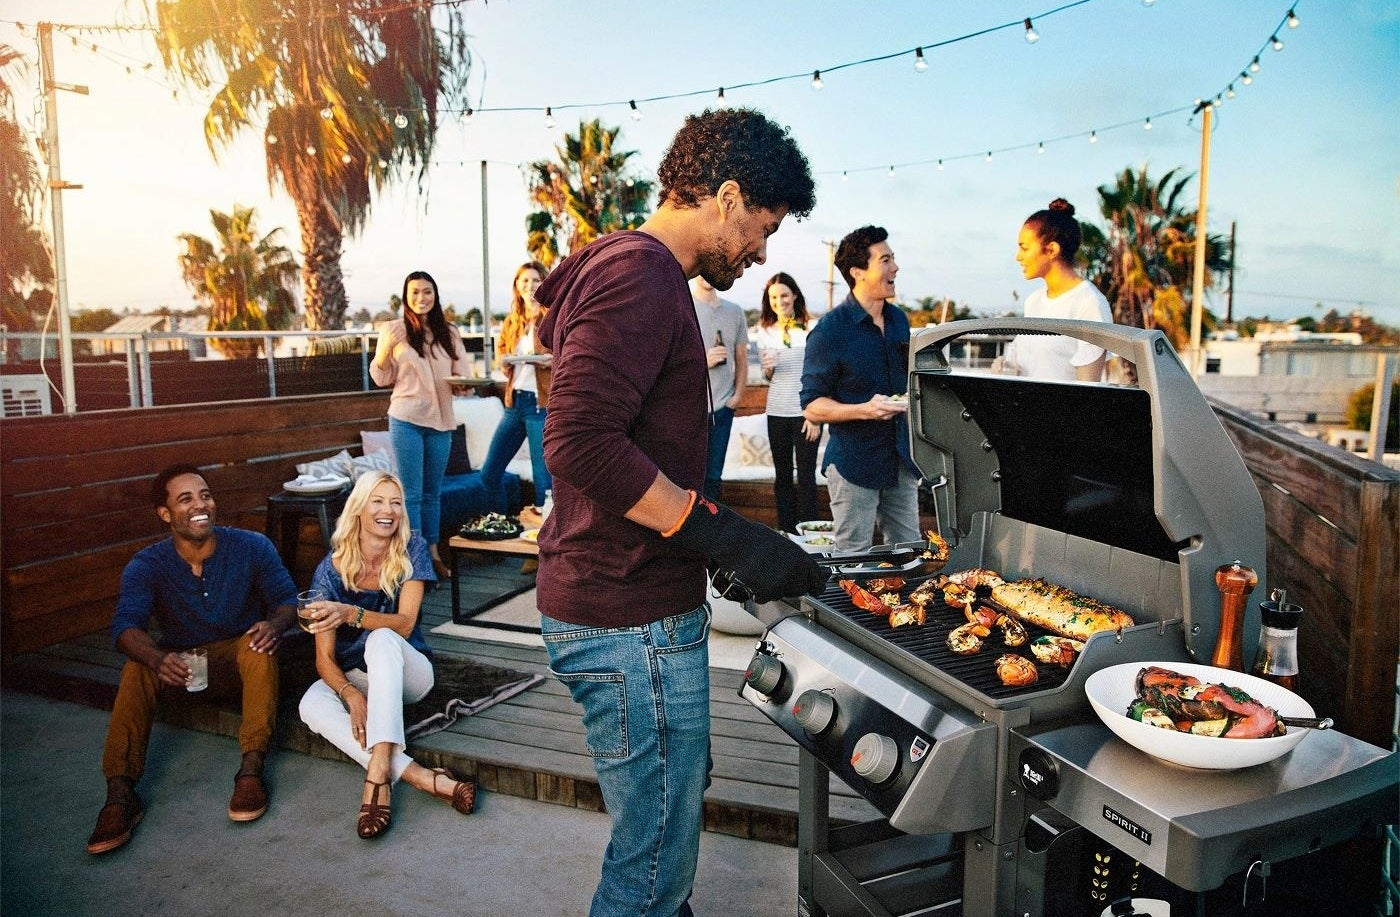 people gathered around a grill